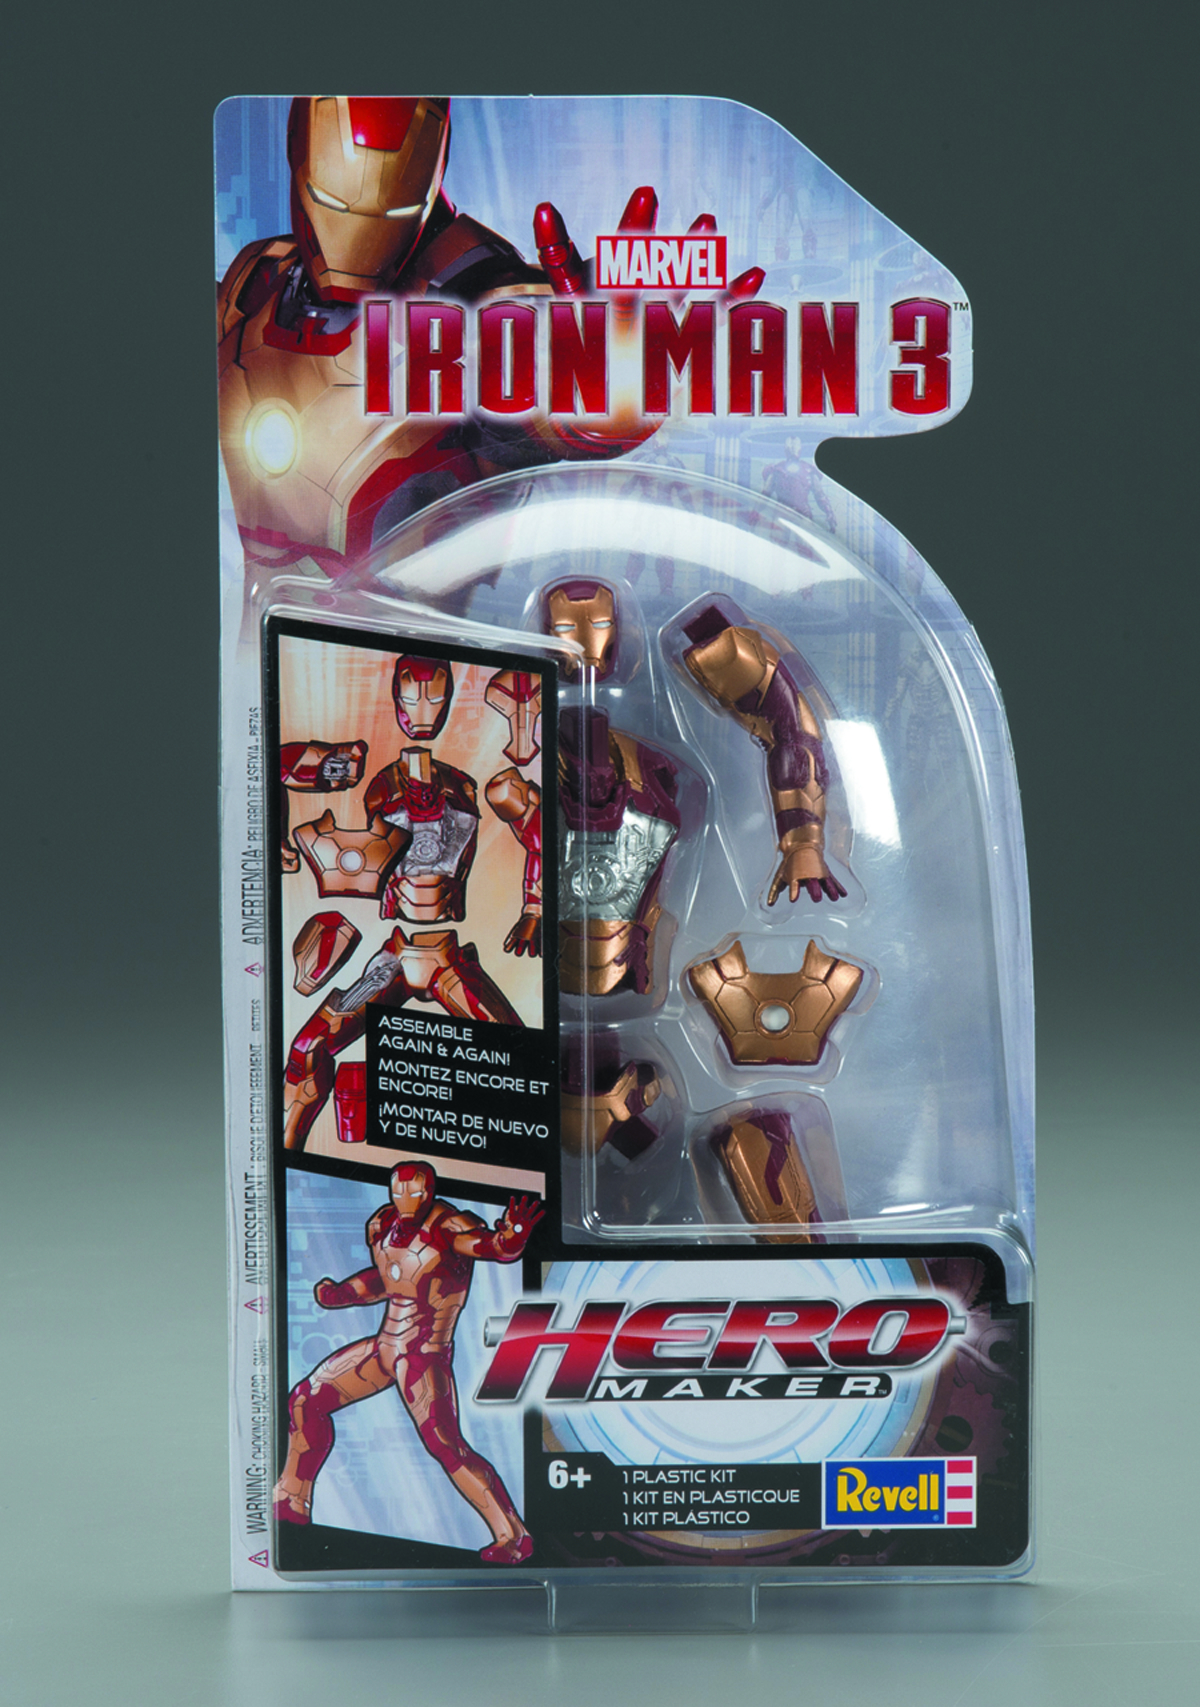 REVELL MARVEL IRON MAN 3 HERO MAKER KIT